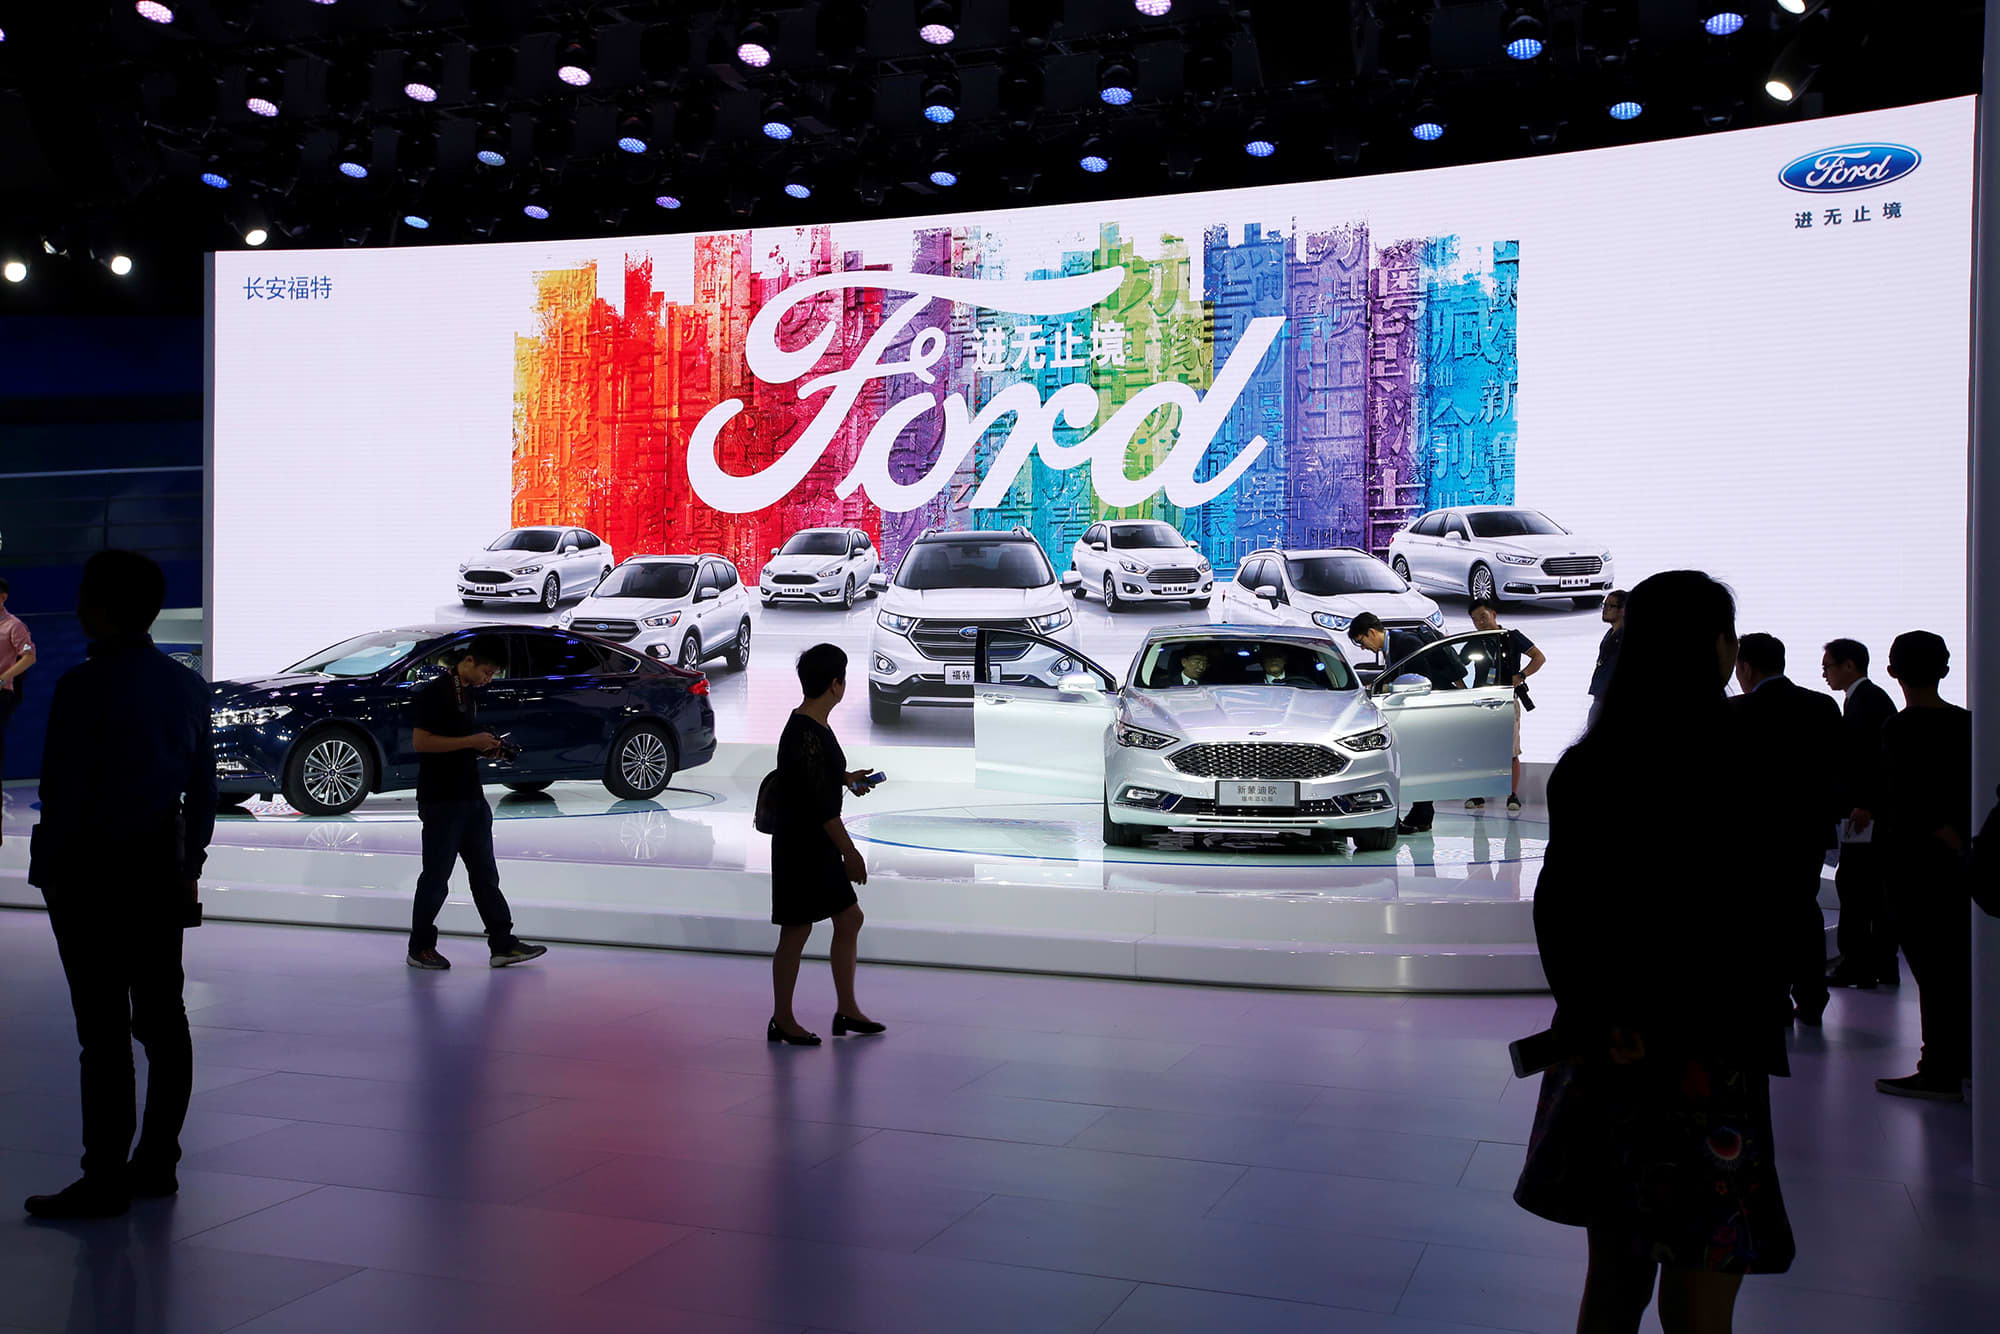 RT: Ford China: Visitors look at Ford models at Auto Guangzhou in Guangzhou, China November 17, 2017.